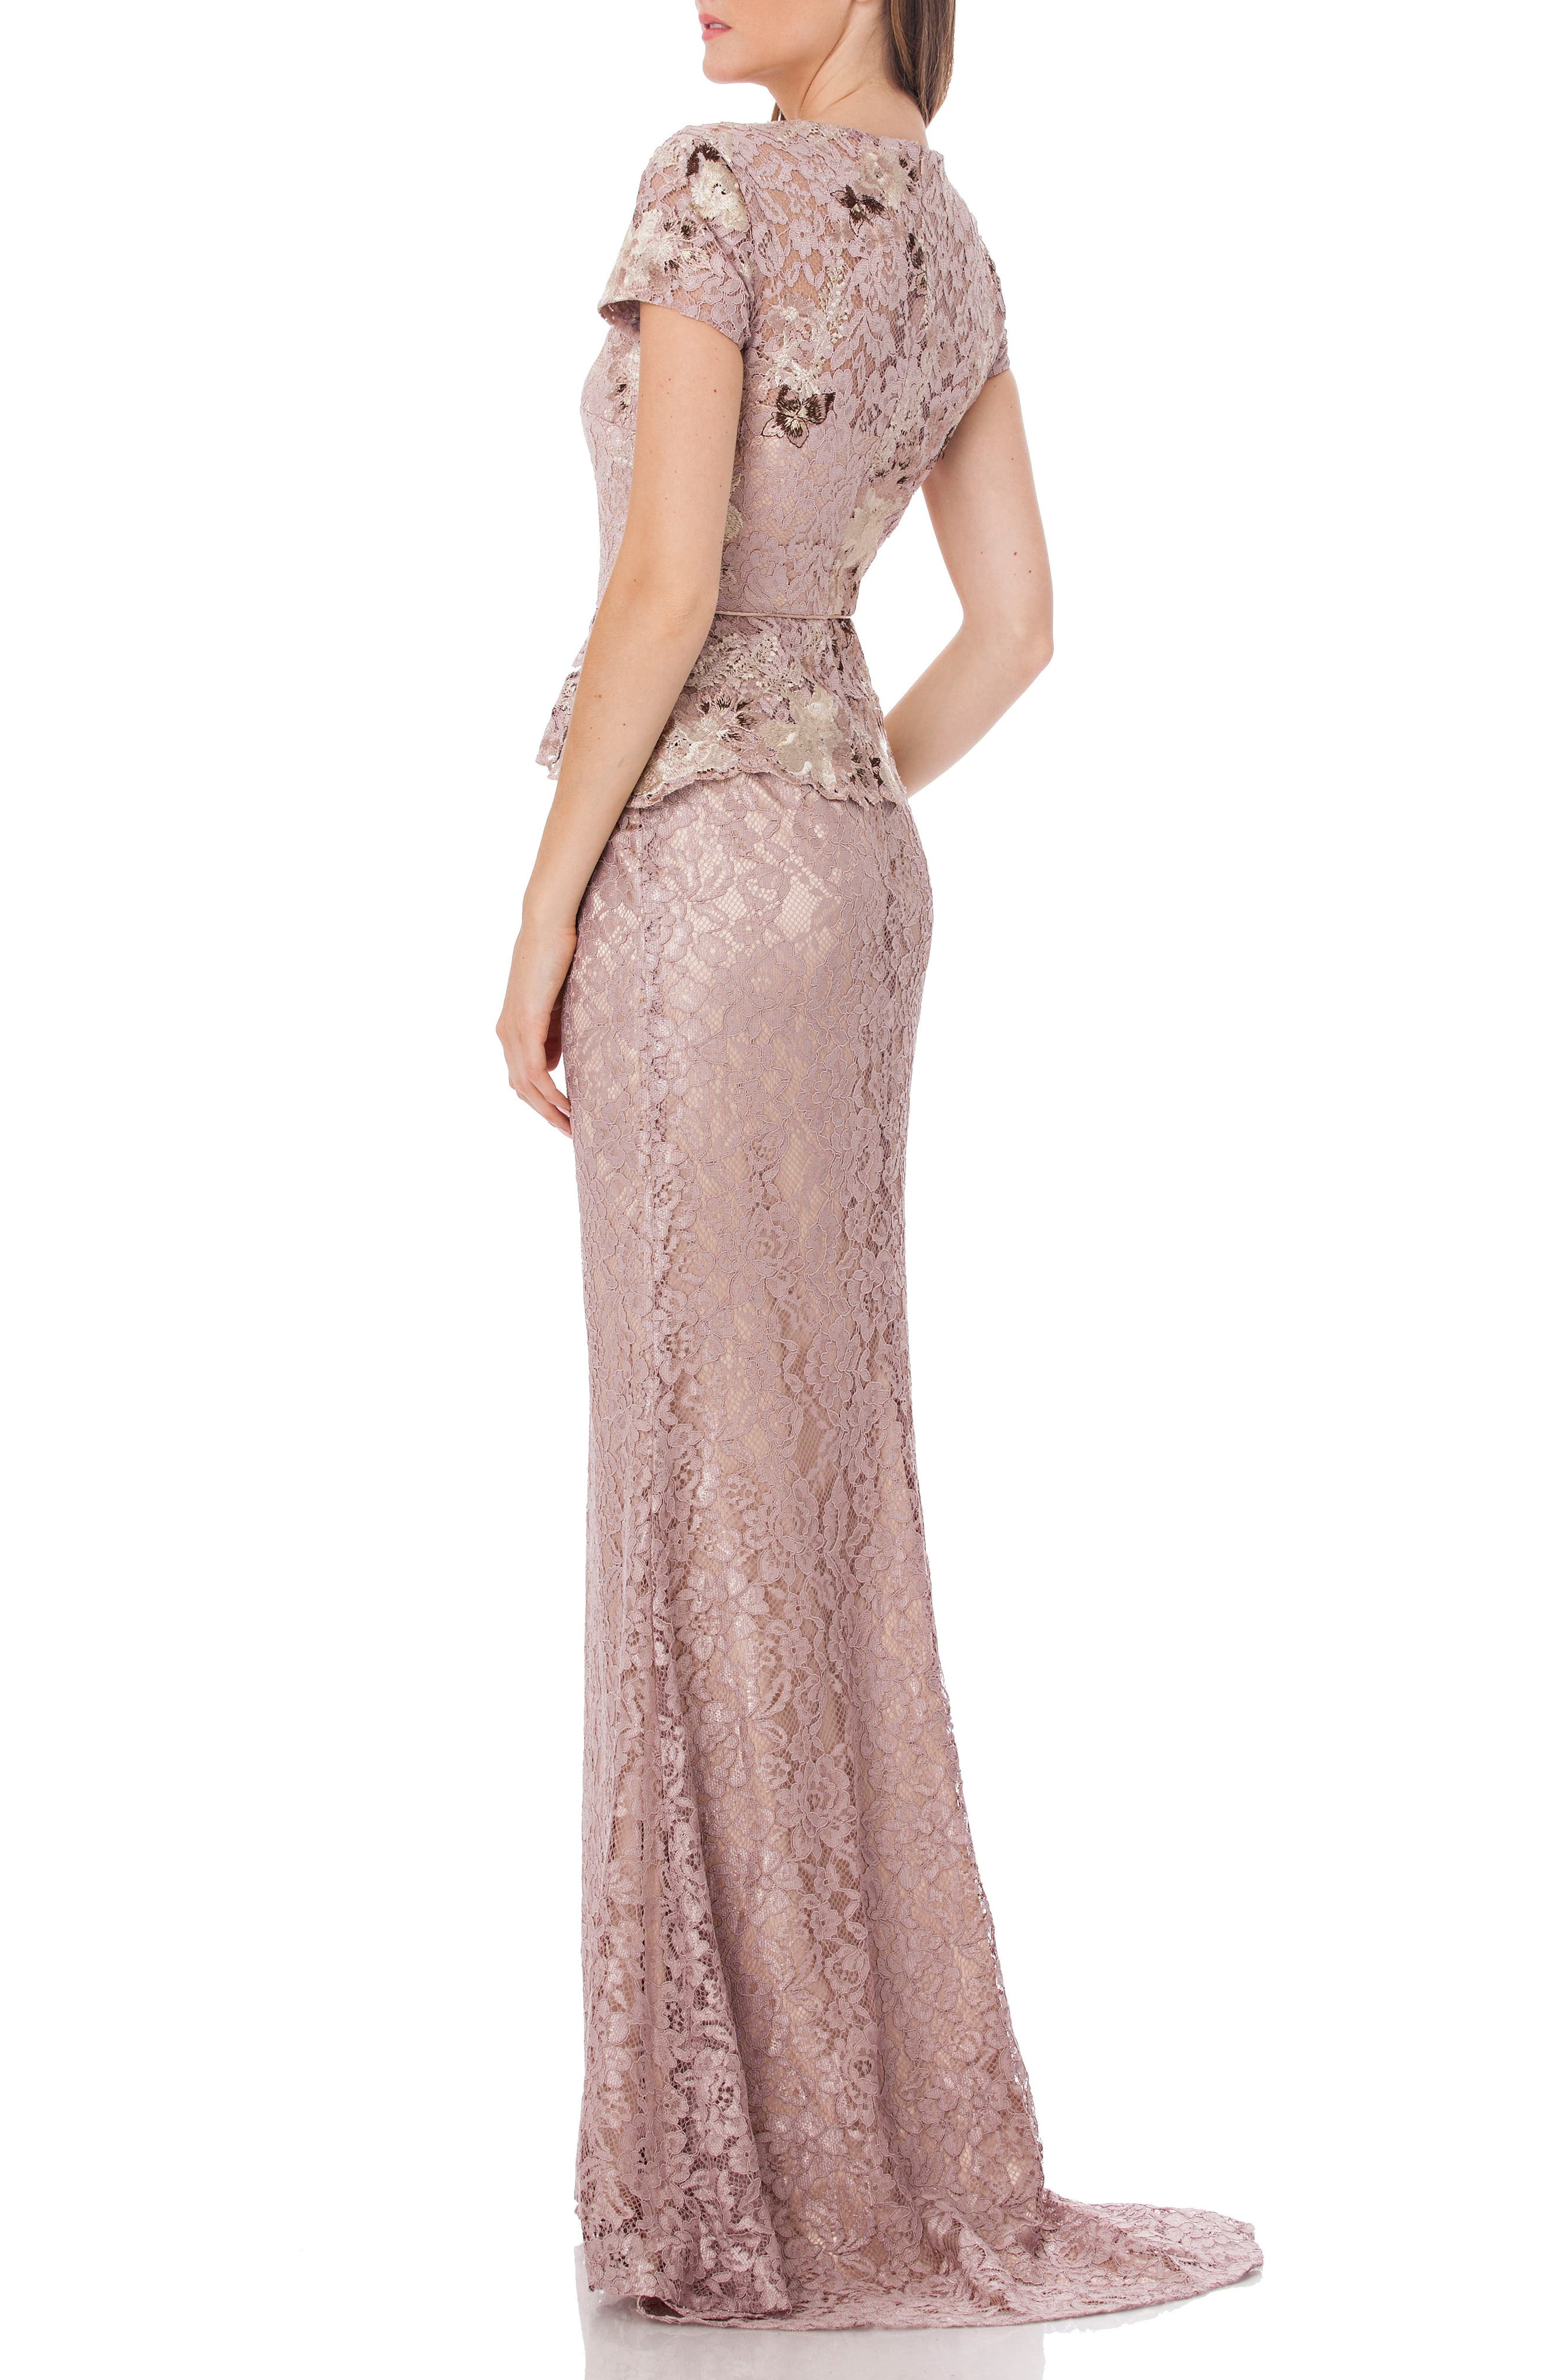 JS COLLECTIONS, Lace Gown, Alternate thumbnail 2, color, LAVENDER/ BLUSH